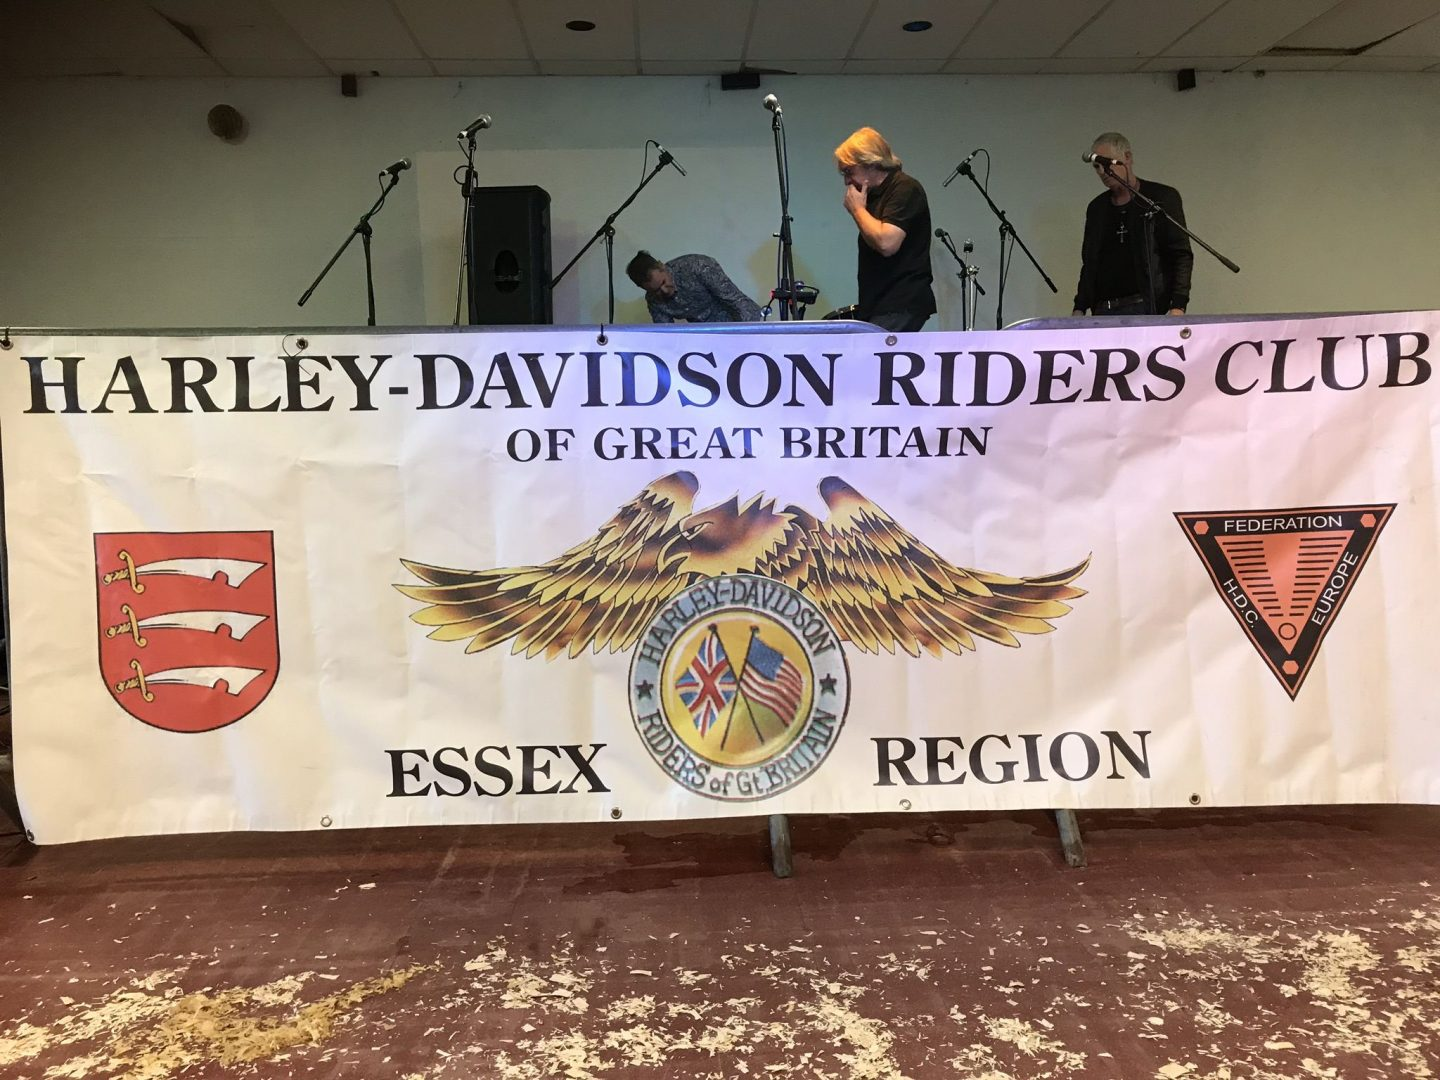 Harley-Davidson Riders Club – Essex Region